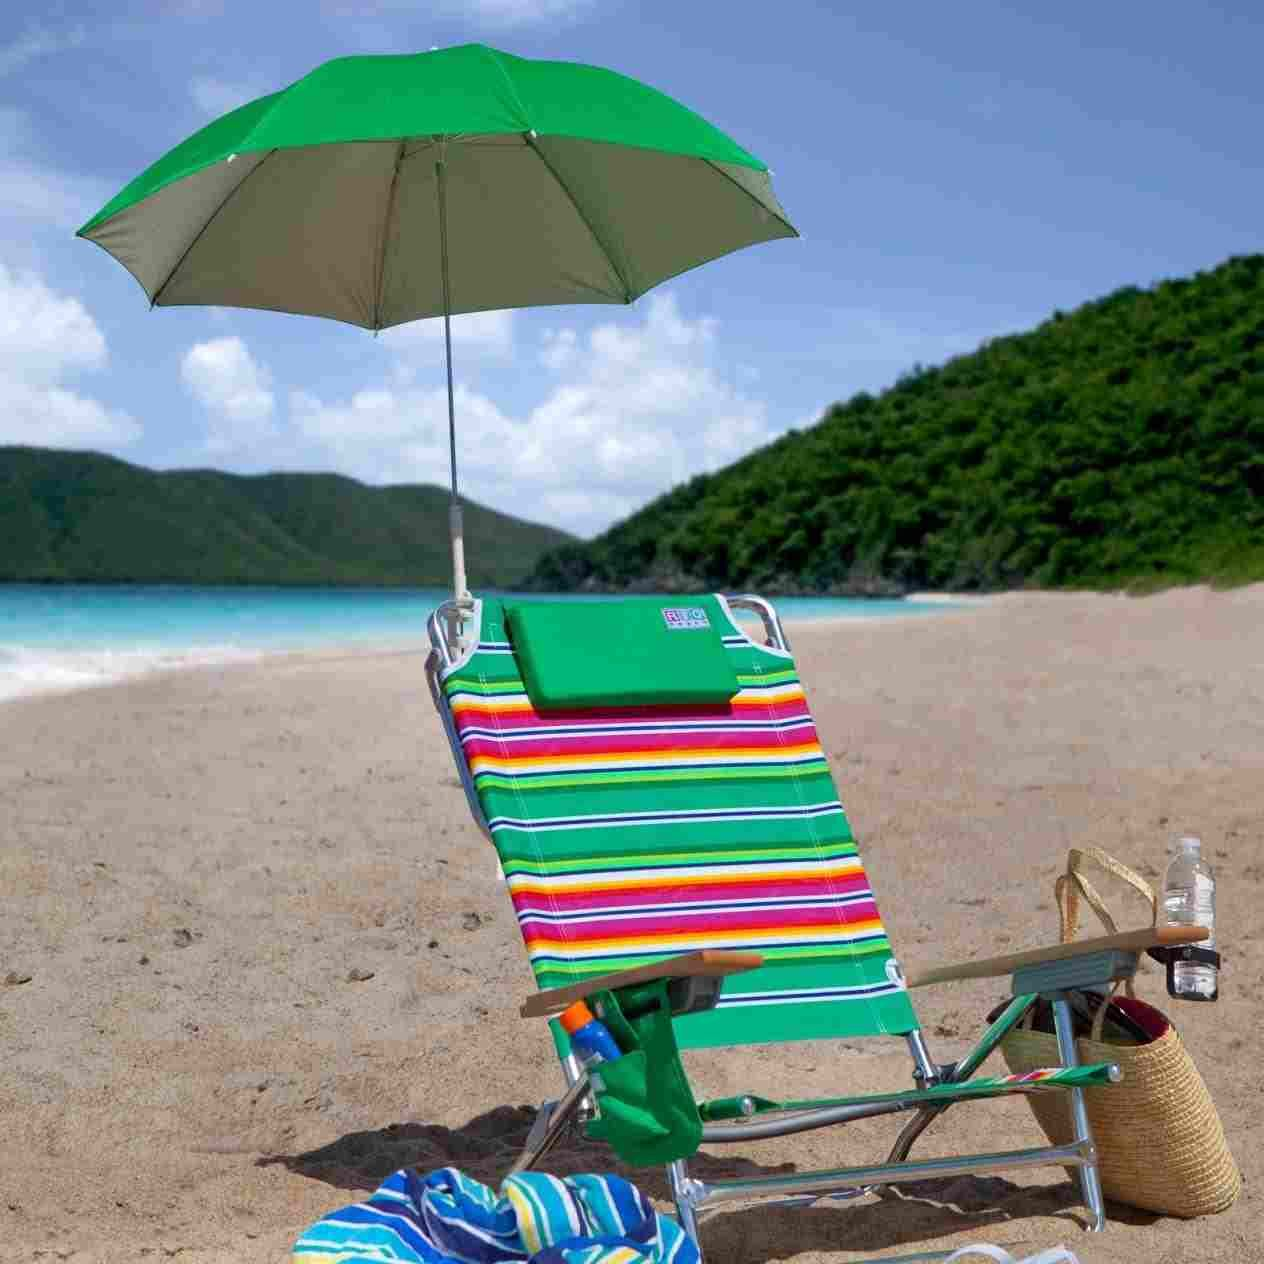 Beach Chairs With Umbrellas Yellow And White Accent Clip On Umbrella For Chair Riset